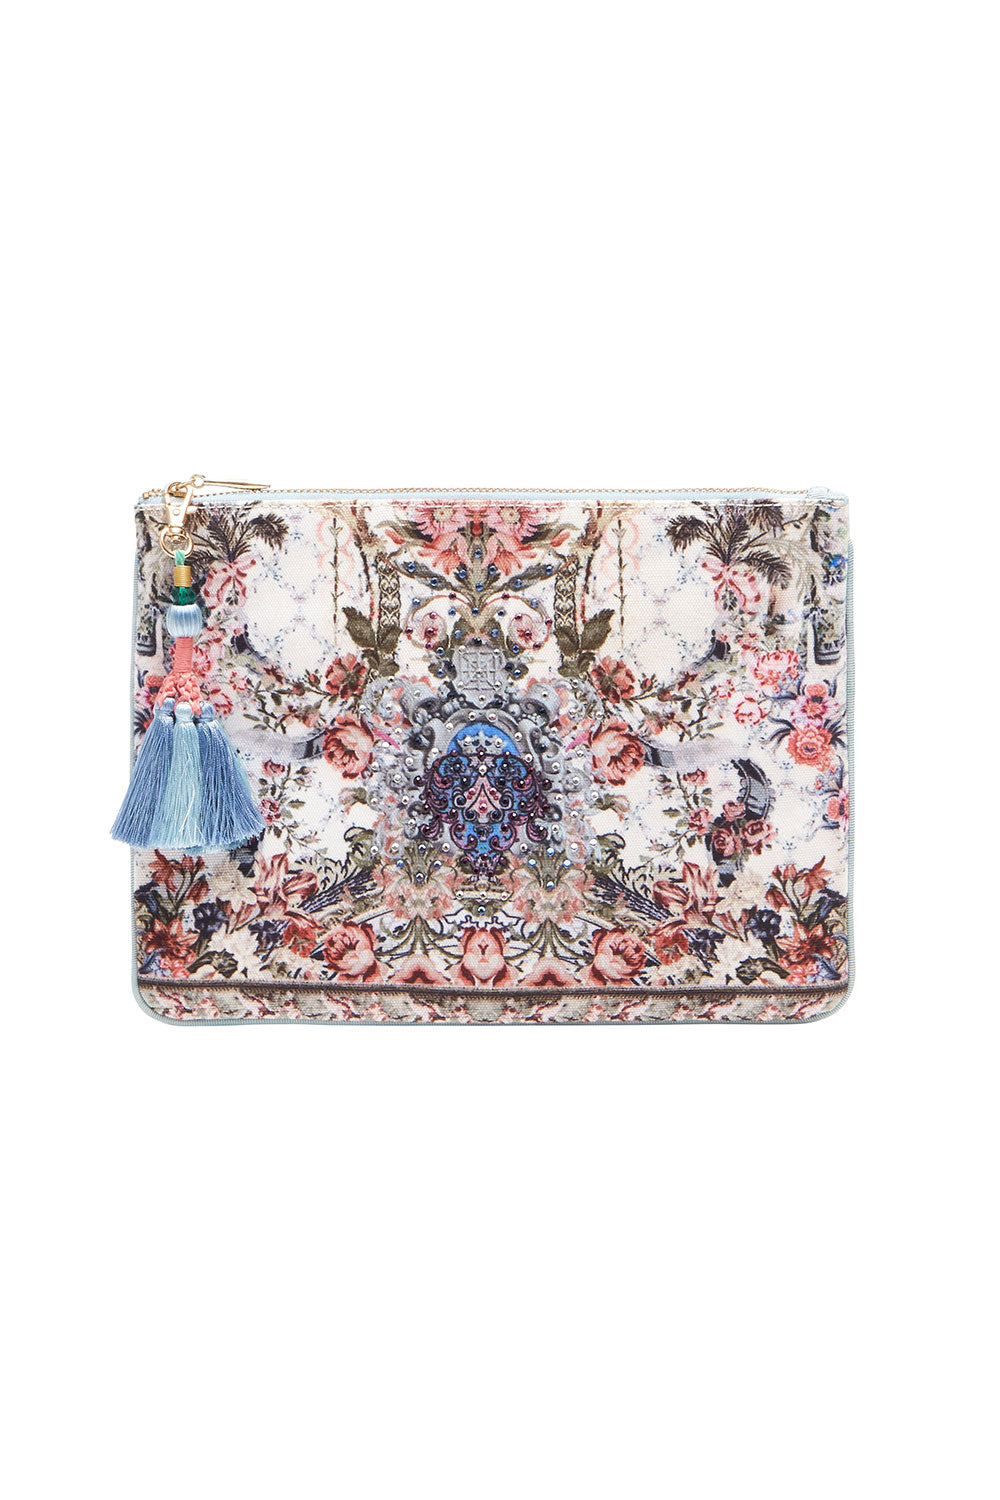 fbfe535f98efe Southern Belle Small Canvas Clutch – est.90